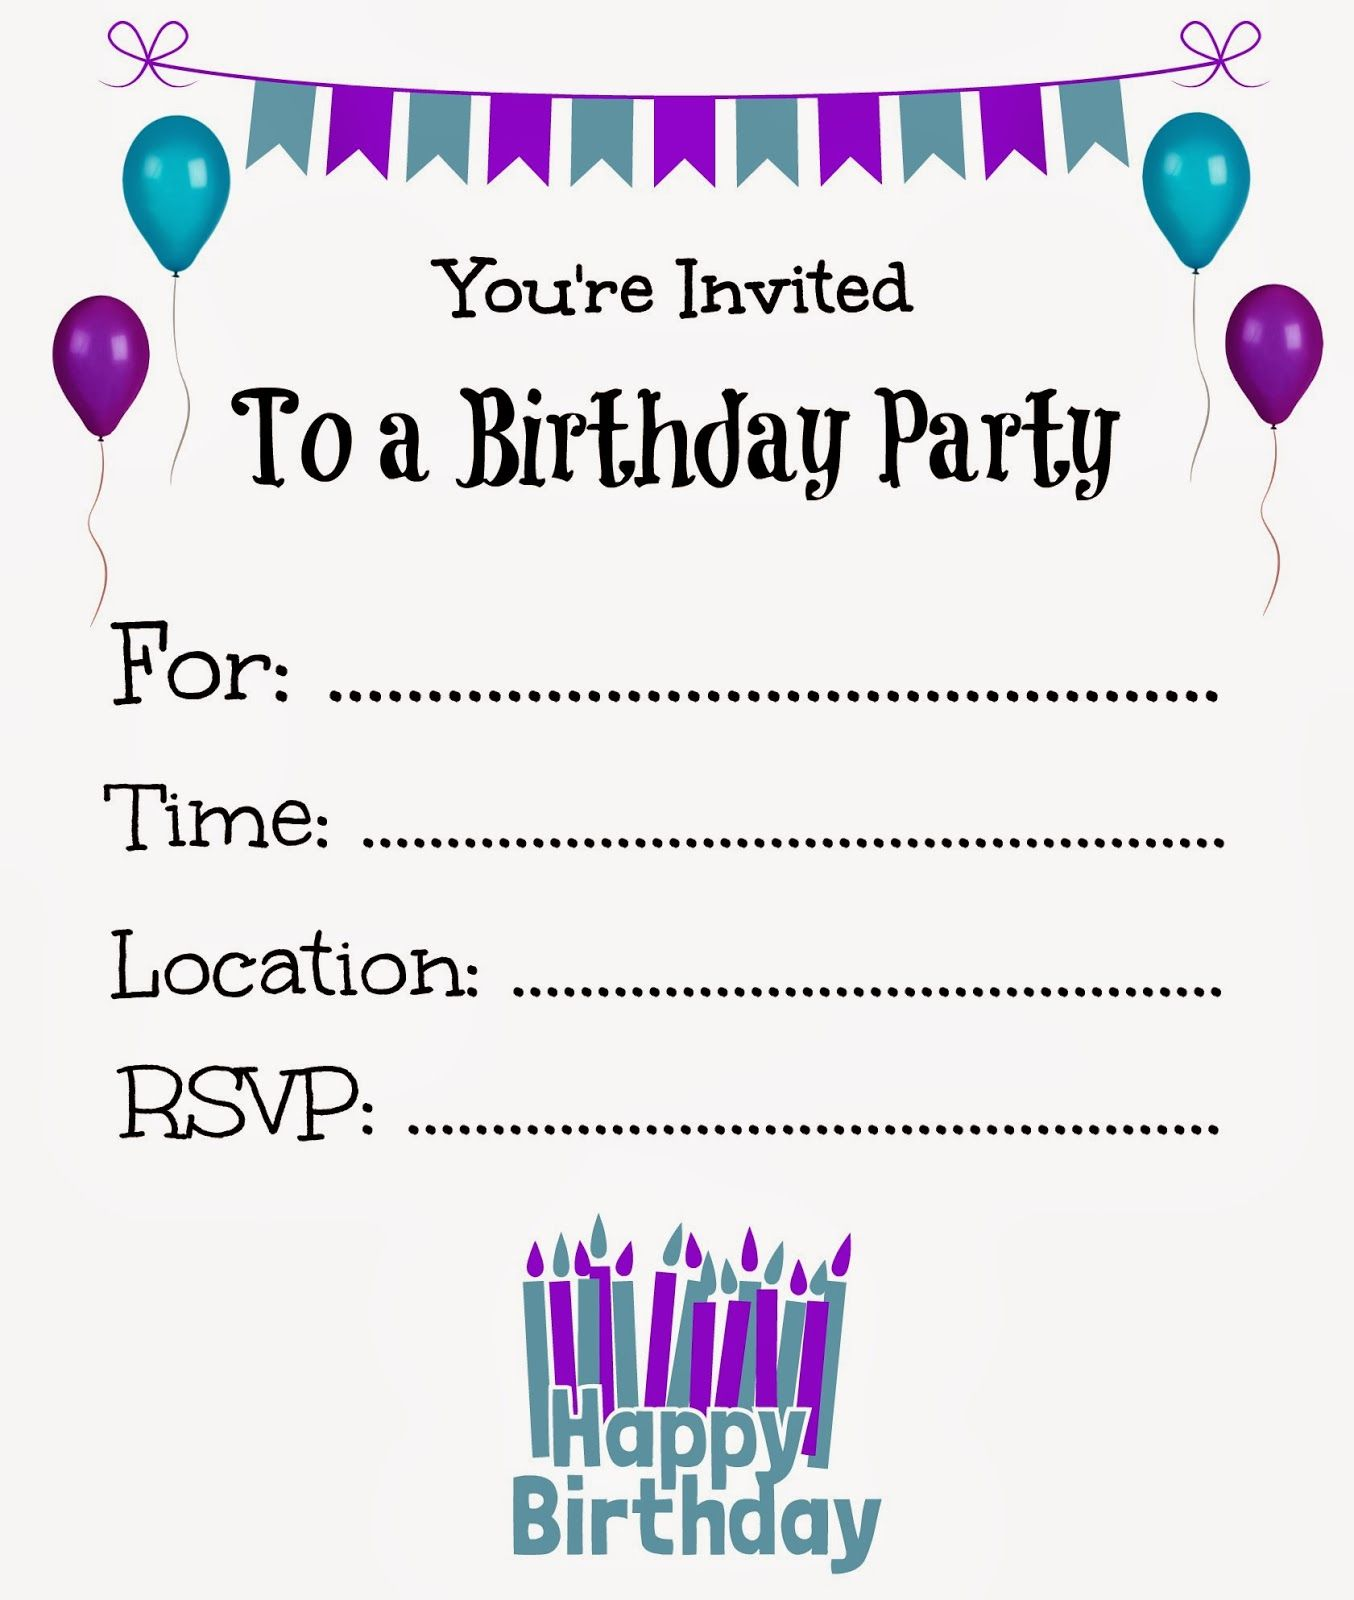 birthday invitation pictures images ; fed158bcdae1e897906da9cd5b110490